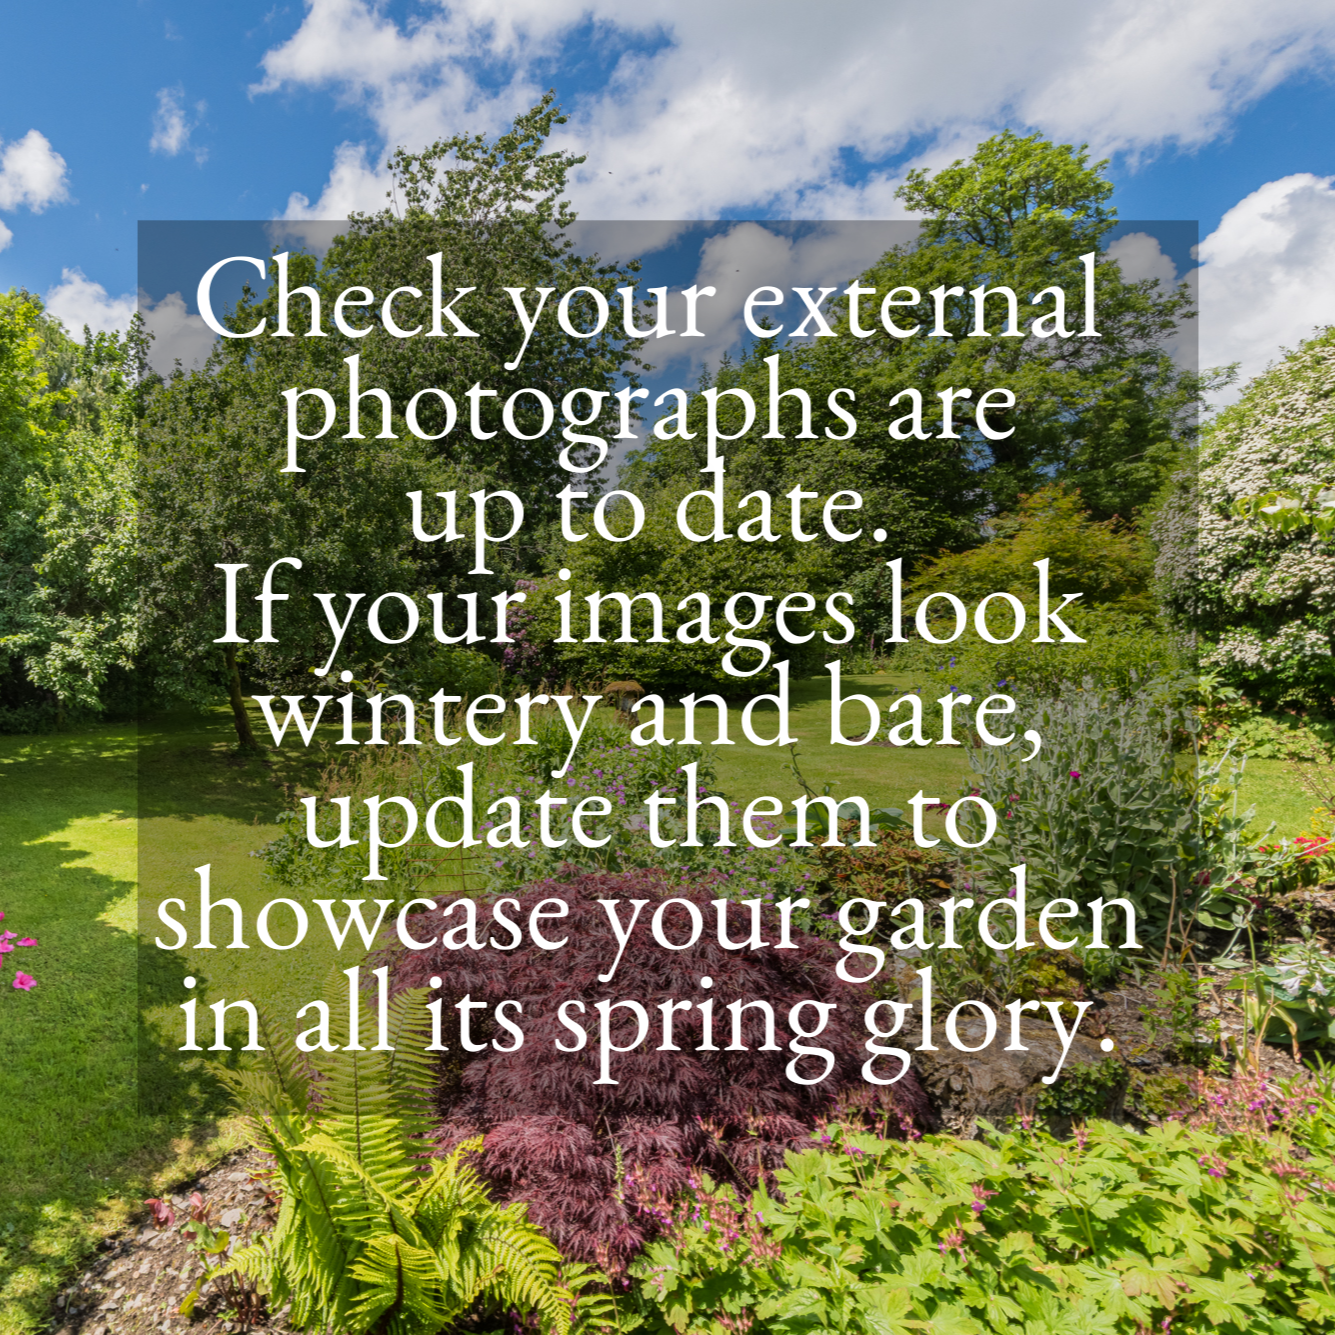 tg1-check-your-external-photographs-for-signs-of-dating